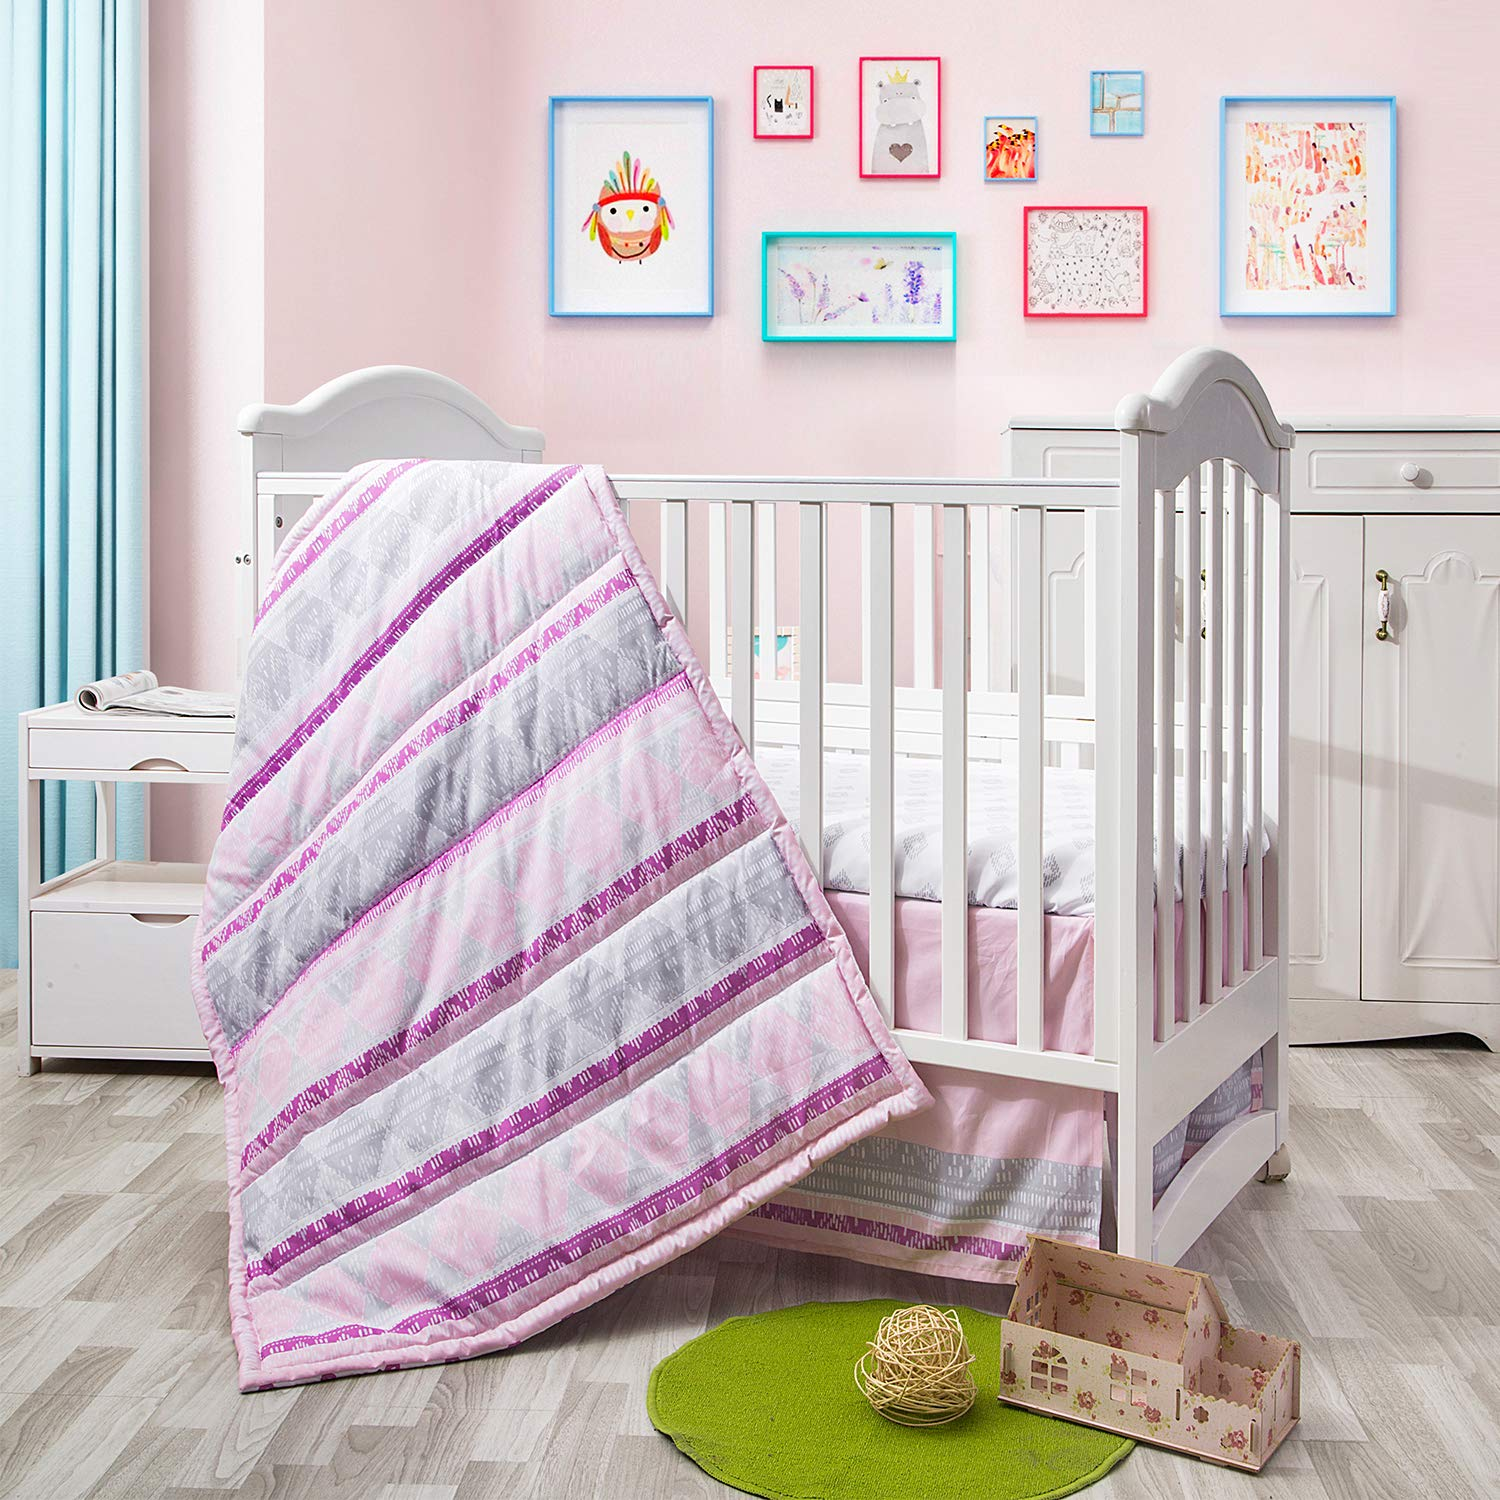 Little Grape Land 3-Piece Nursery Crib Bedding Sets, Soft Polyester Microfiber for Standard Size Crib Bedding Sets for Girl Pink/Purple/Grey/White, (Rosy Diamond)